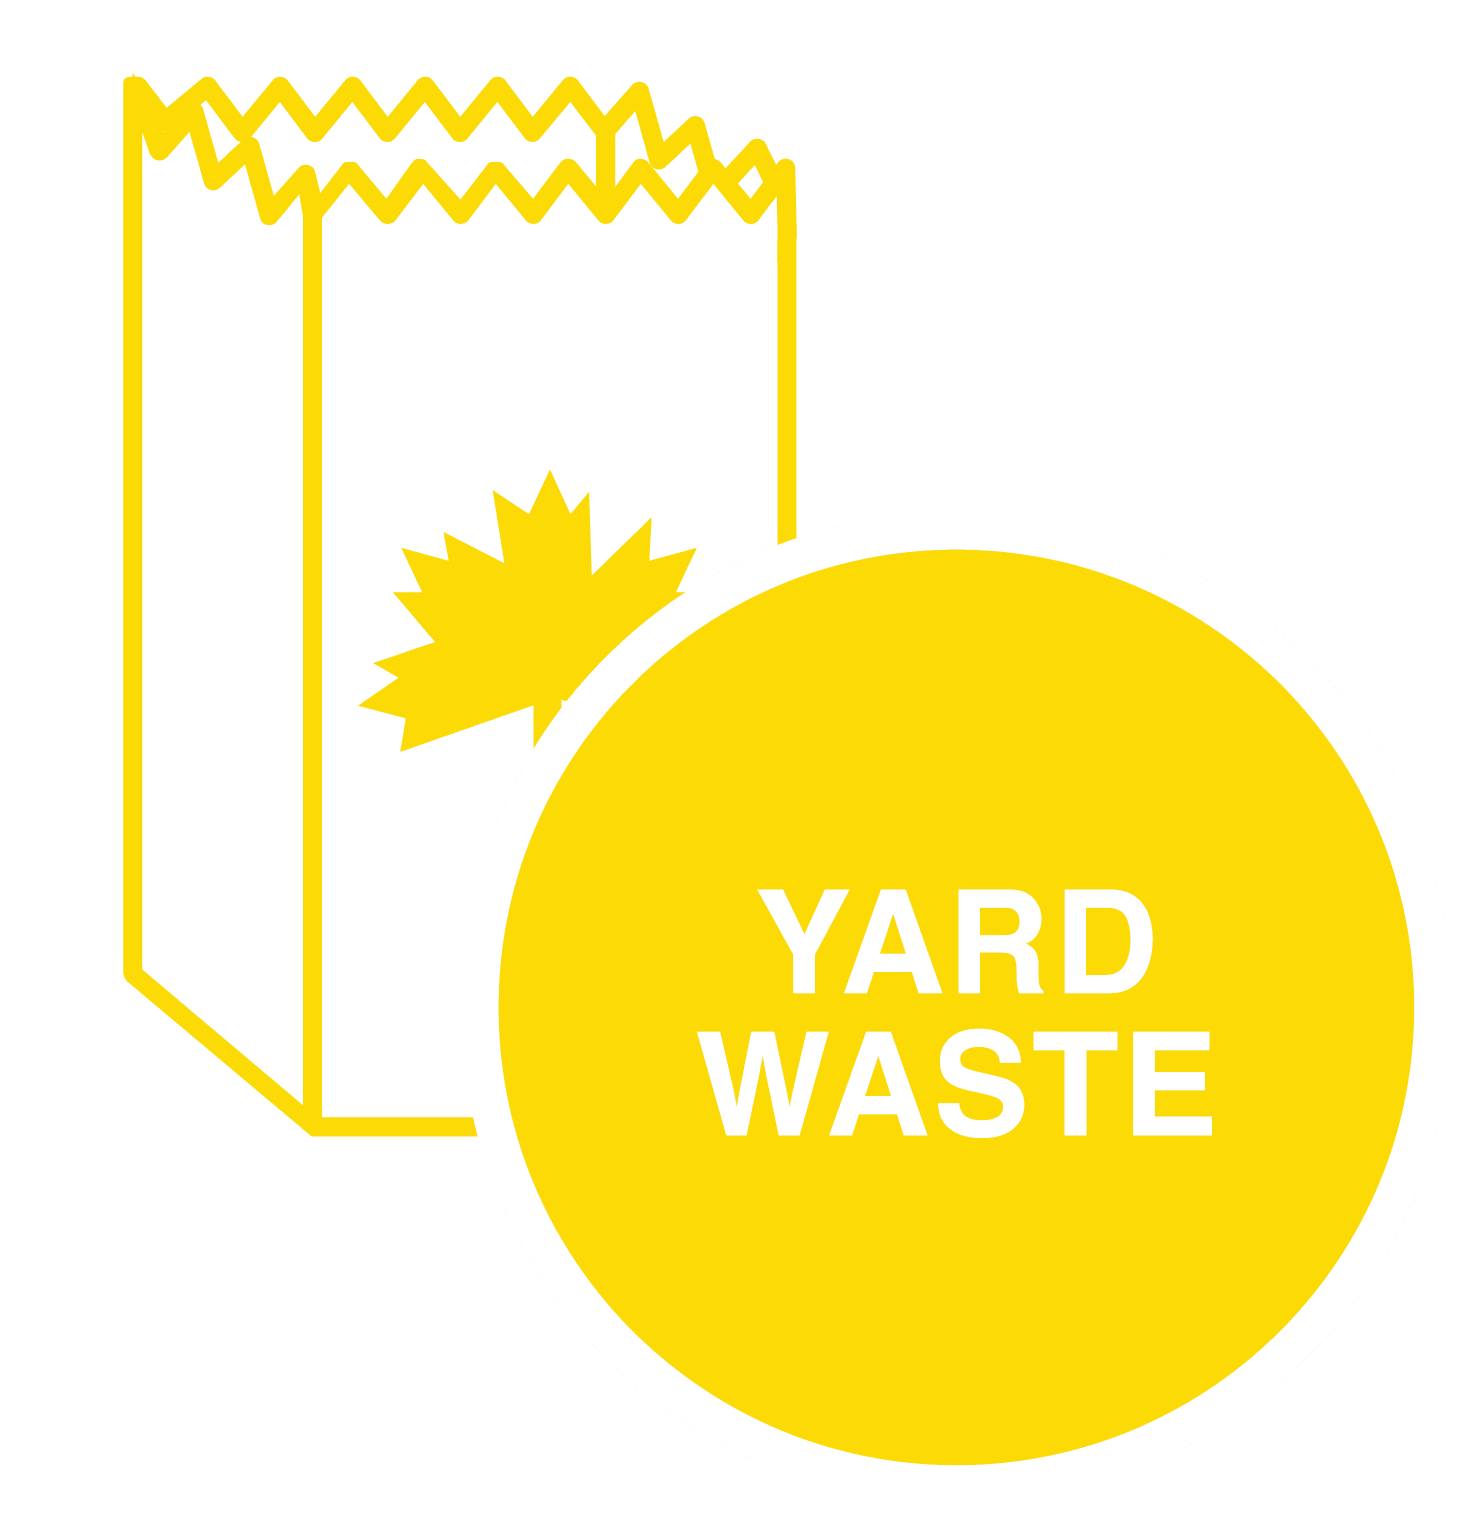 recyclable icons_yard